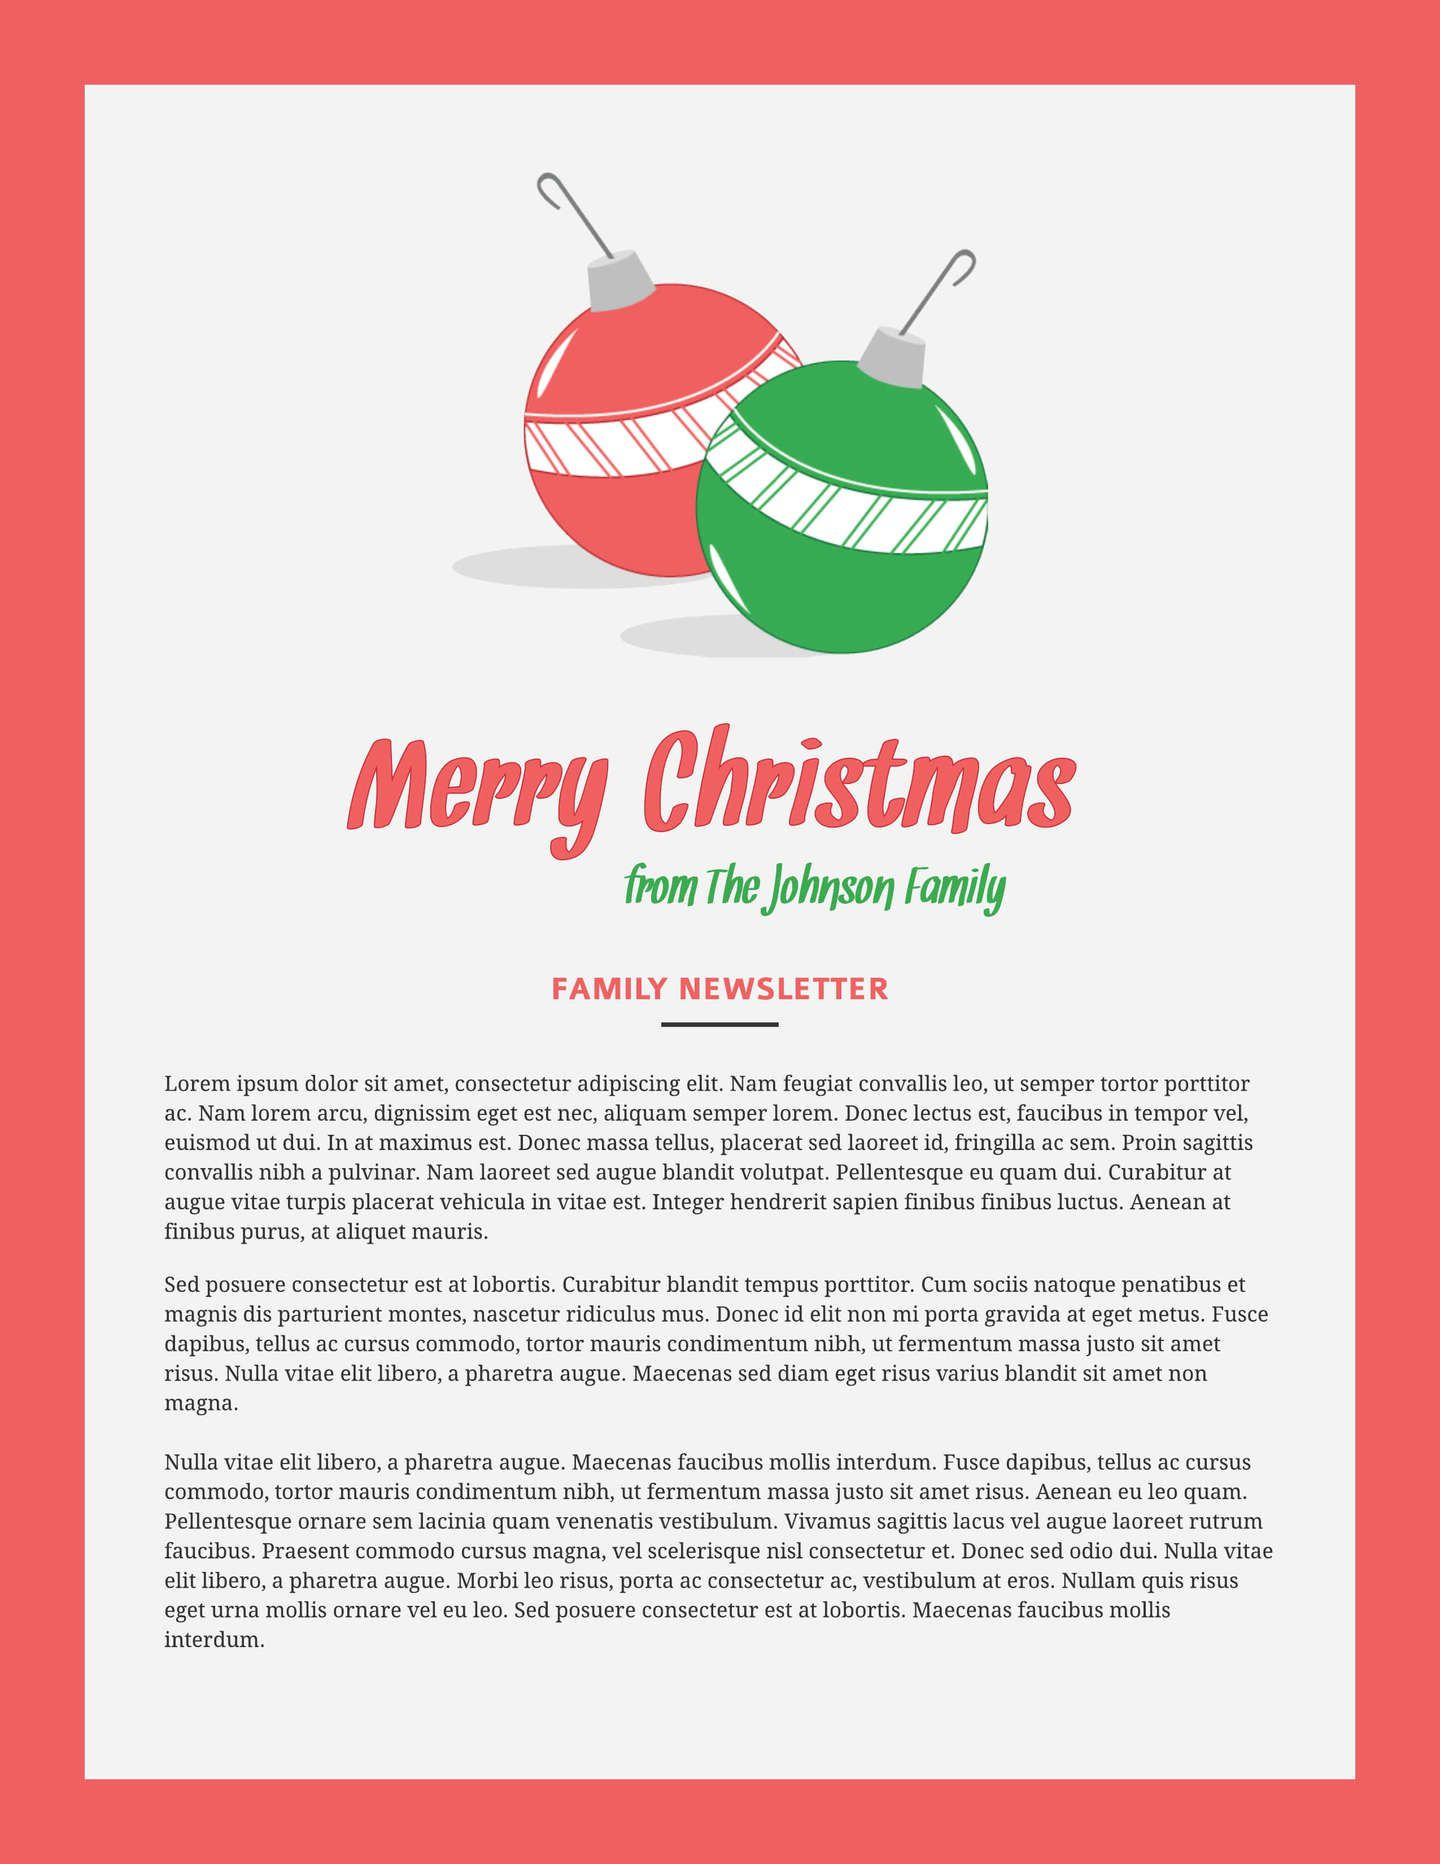 007 Stirring Holiday E Mail Template Inspiration  Templates Mailchimp EmailFull